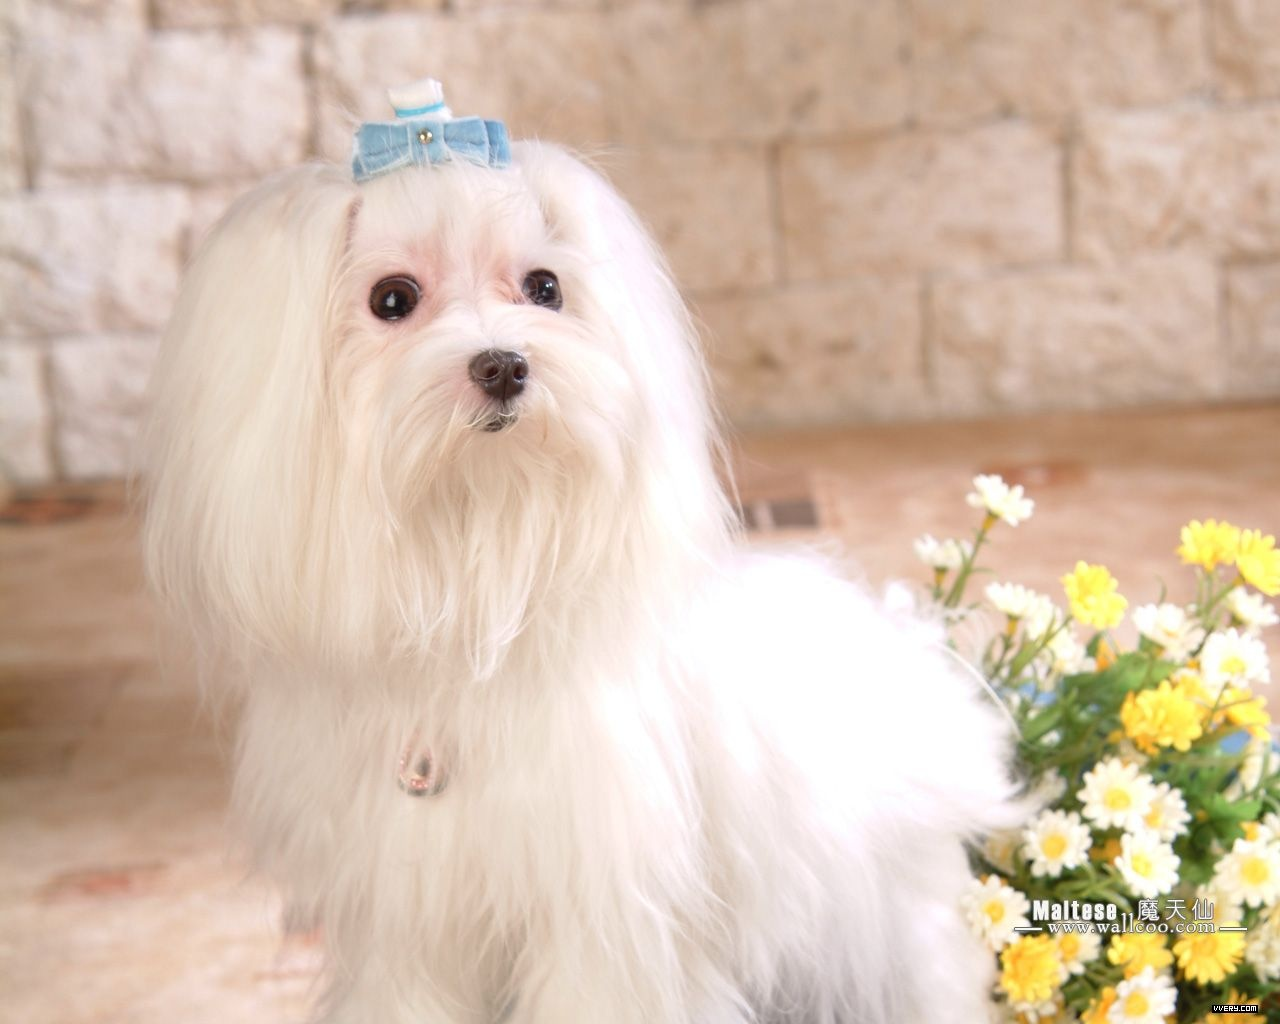 Cute Little Puppies Wallpapers Maltese Wallpapers Fun Animals Wiki Videos Pictures